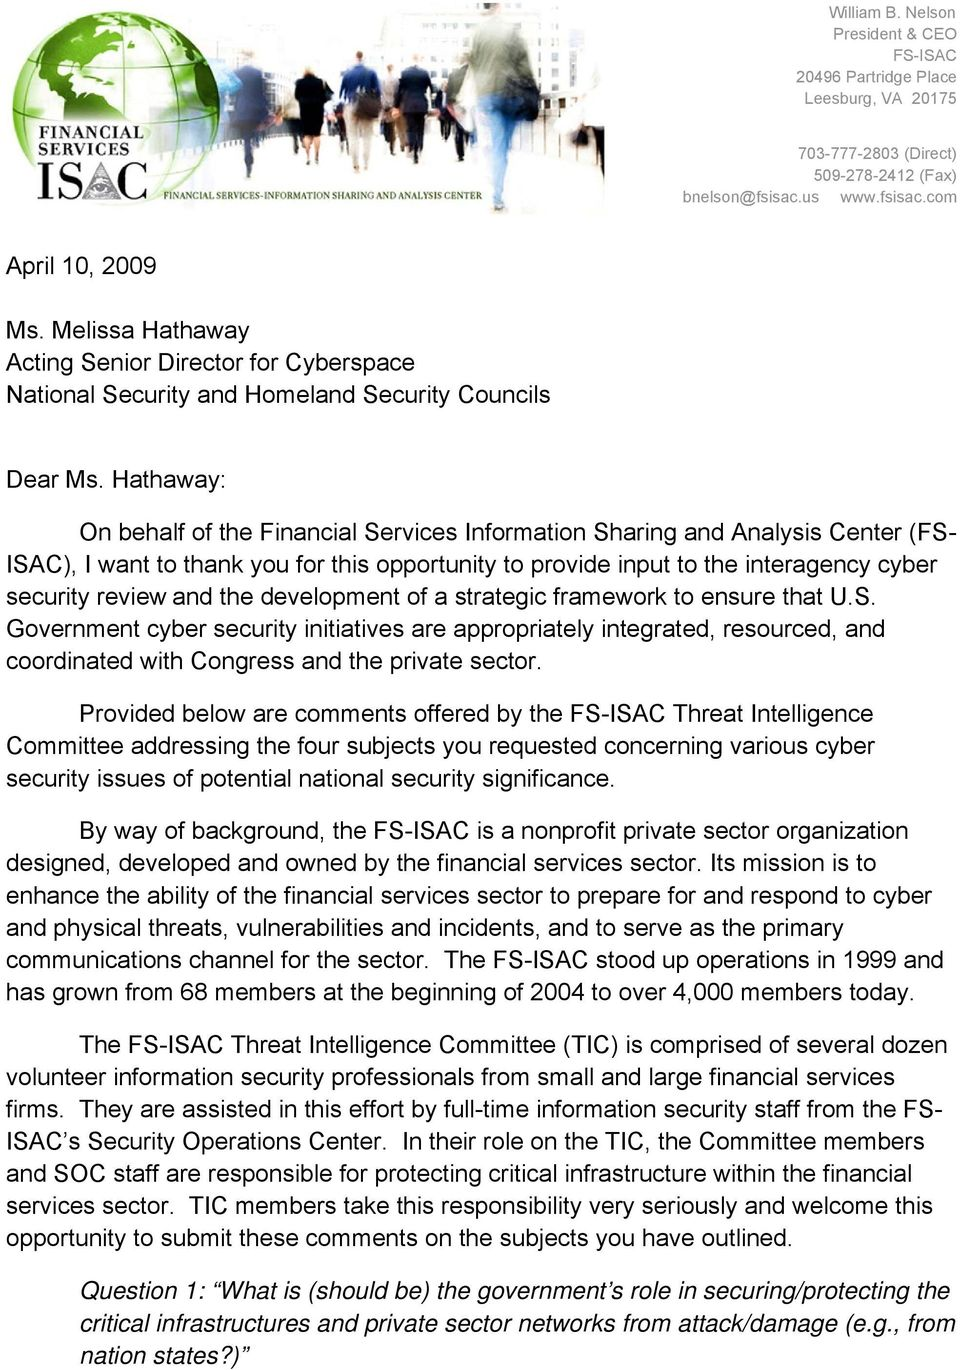 Hathaway: On behalf of the Financial Services Information Sharing and Analysis Center (FS- ISAC), I want to thank you for this opportunity to provide input to the interagency cyber security review